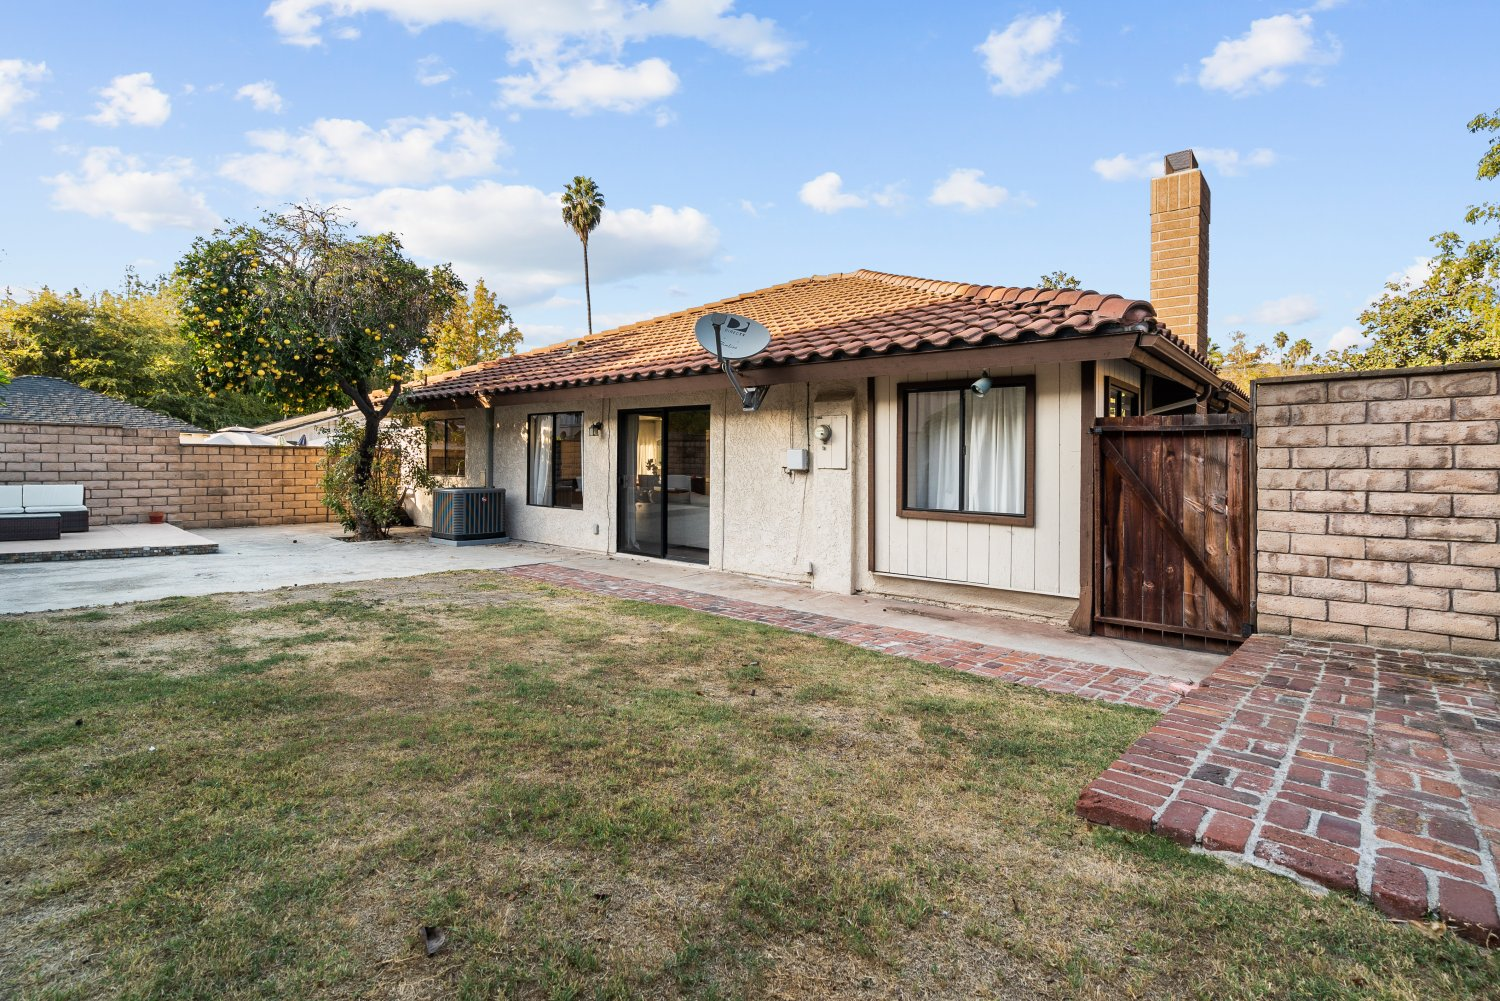 1992 E. Glenoaks Blvd, Glendale, CA 91206 | Photo 28